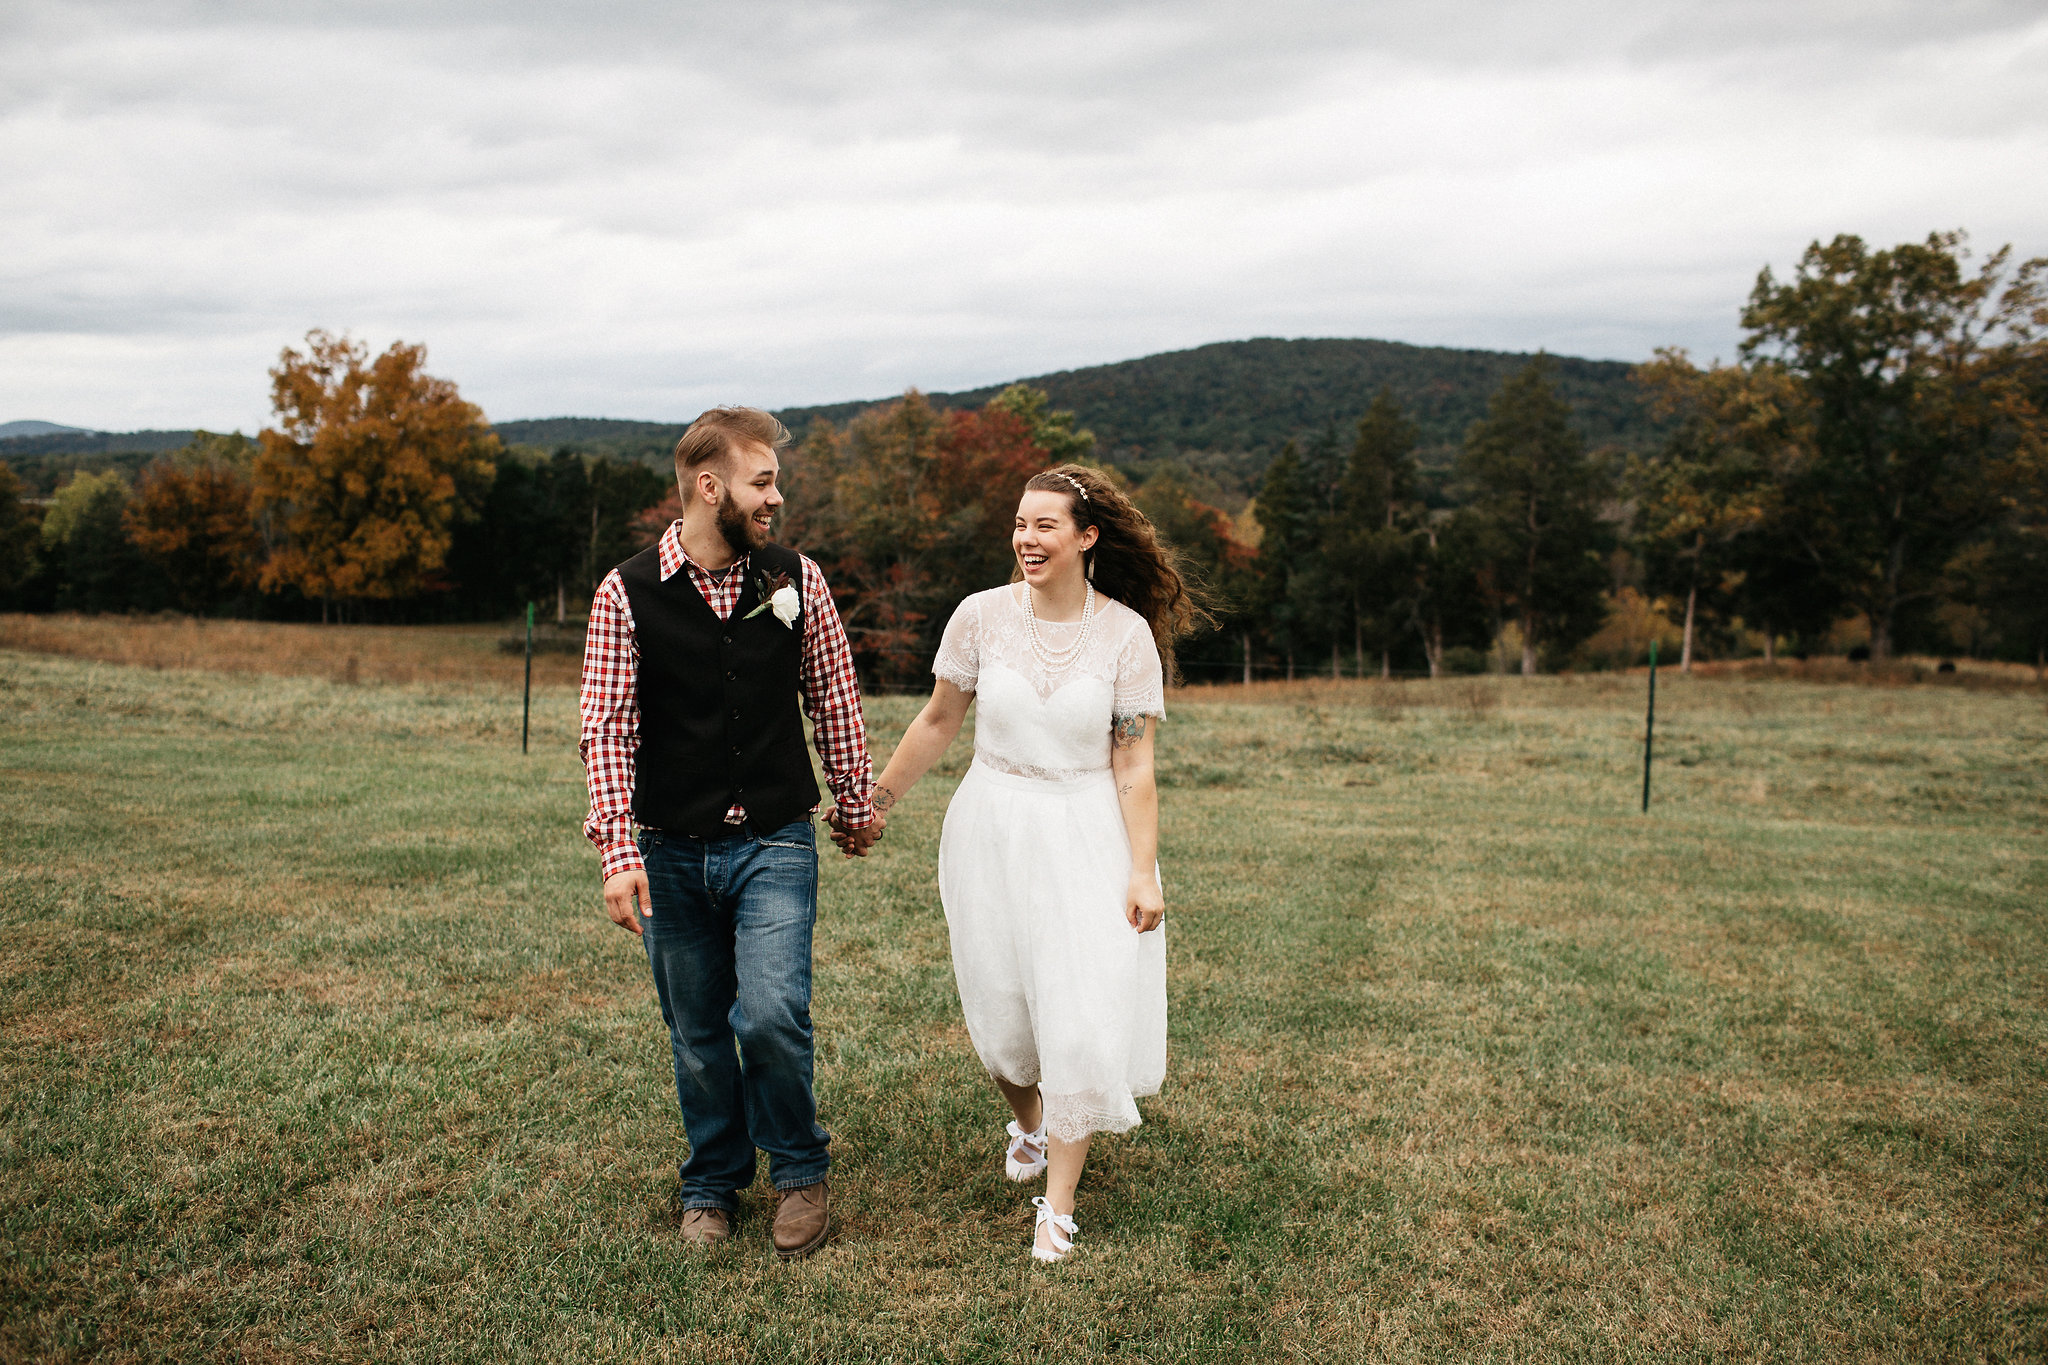 Caitlin&CodyMarried2017-11-03at19.19.40PM81.jpg